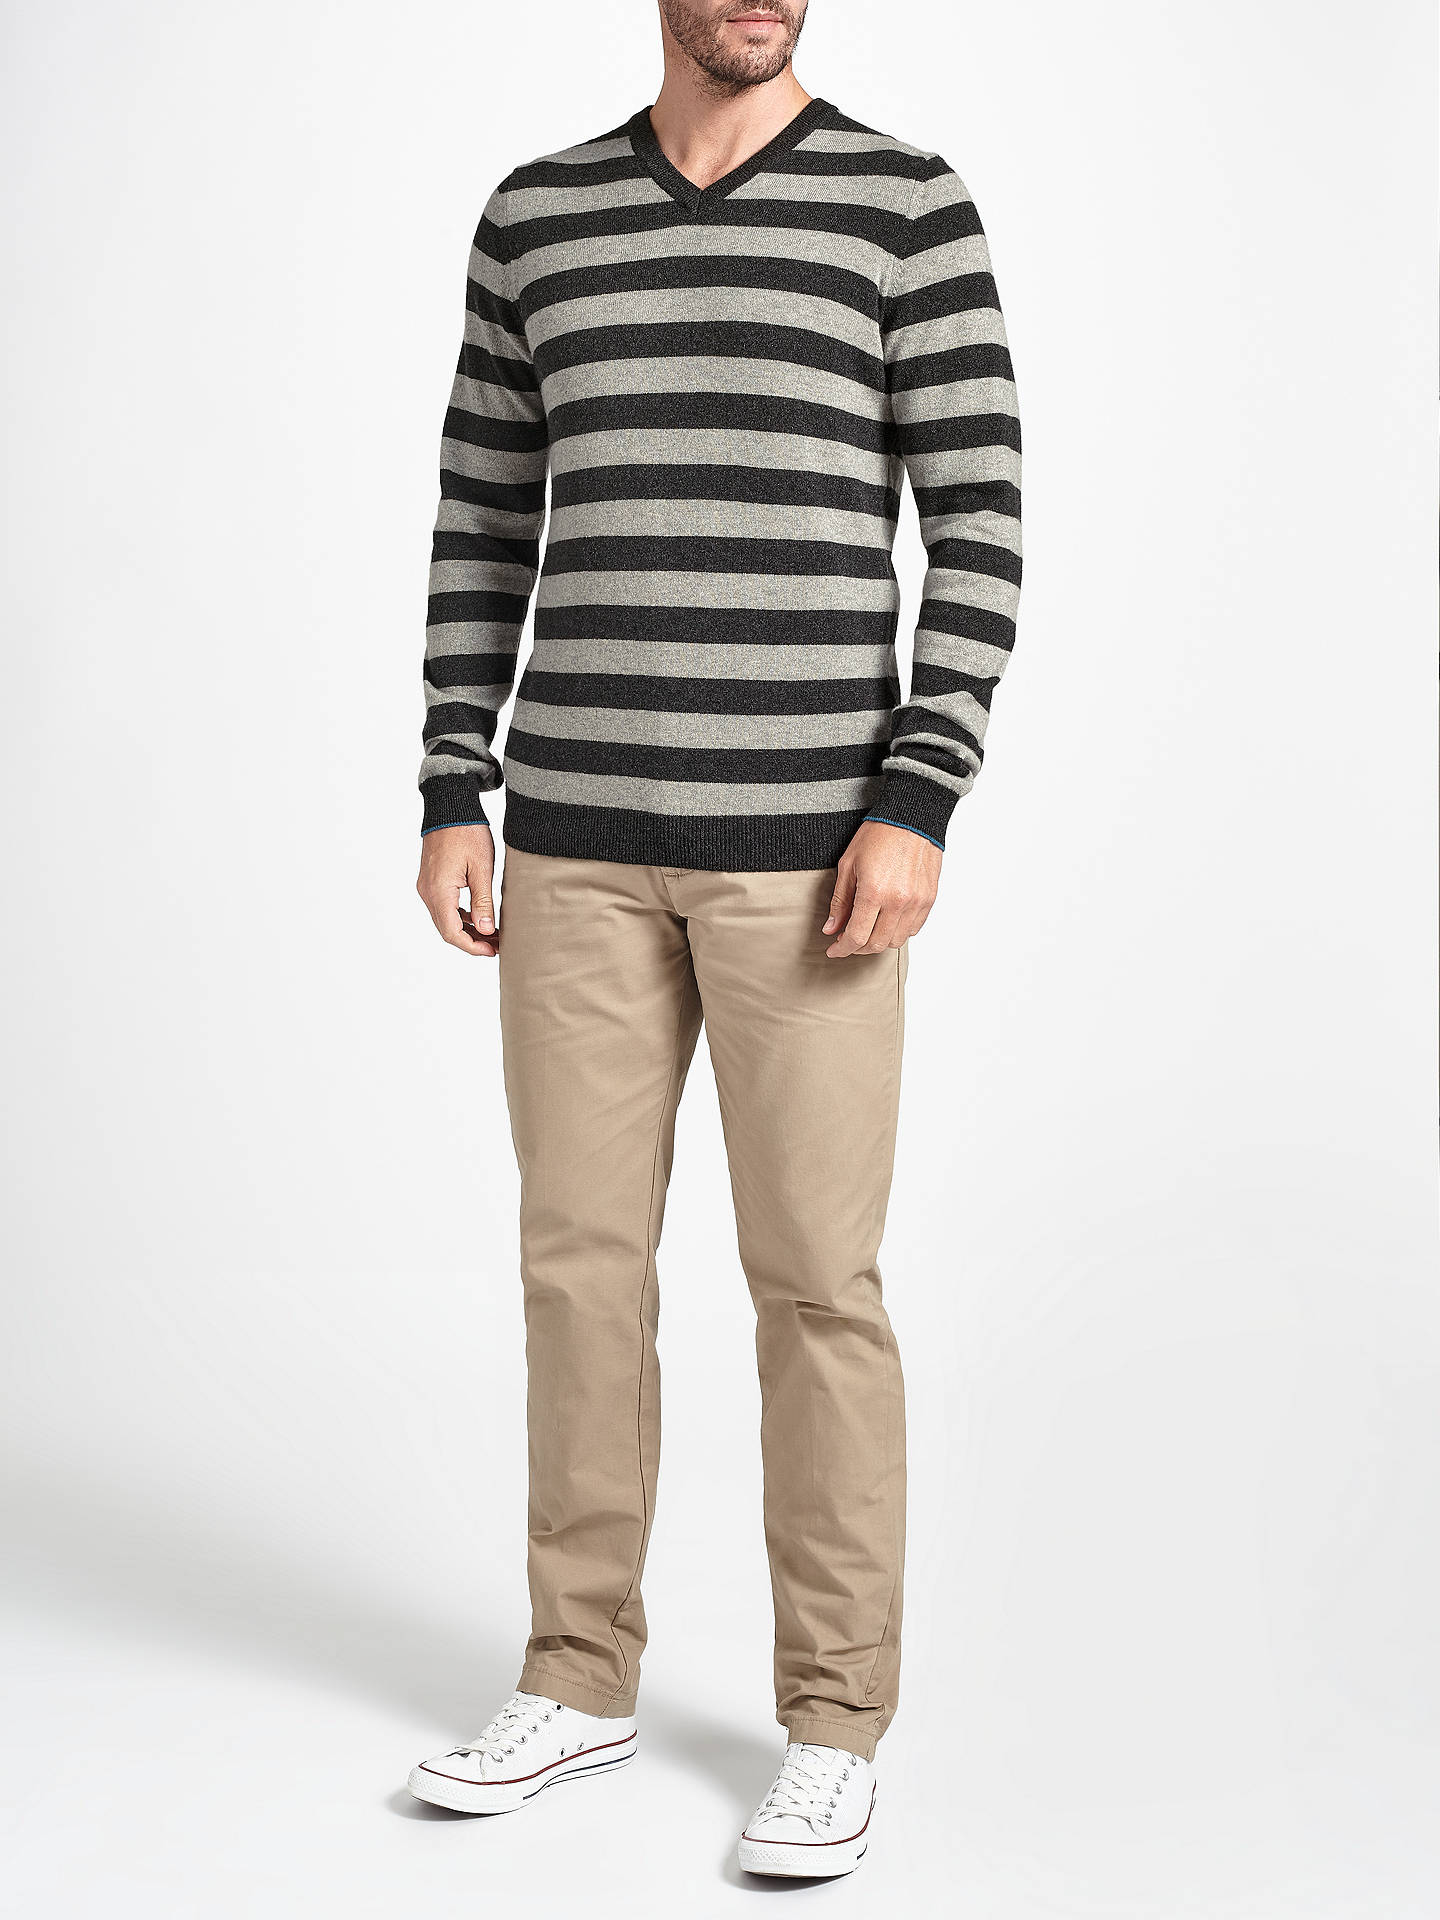 BuyJohn Lewis Italian Cashmere Stripe V-Neck Jumper, Grey, S Online at johnlewis.com